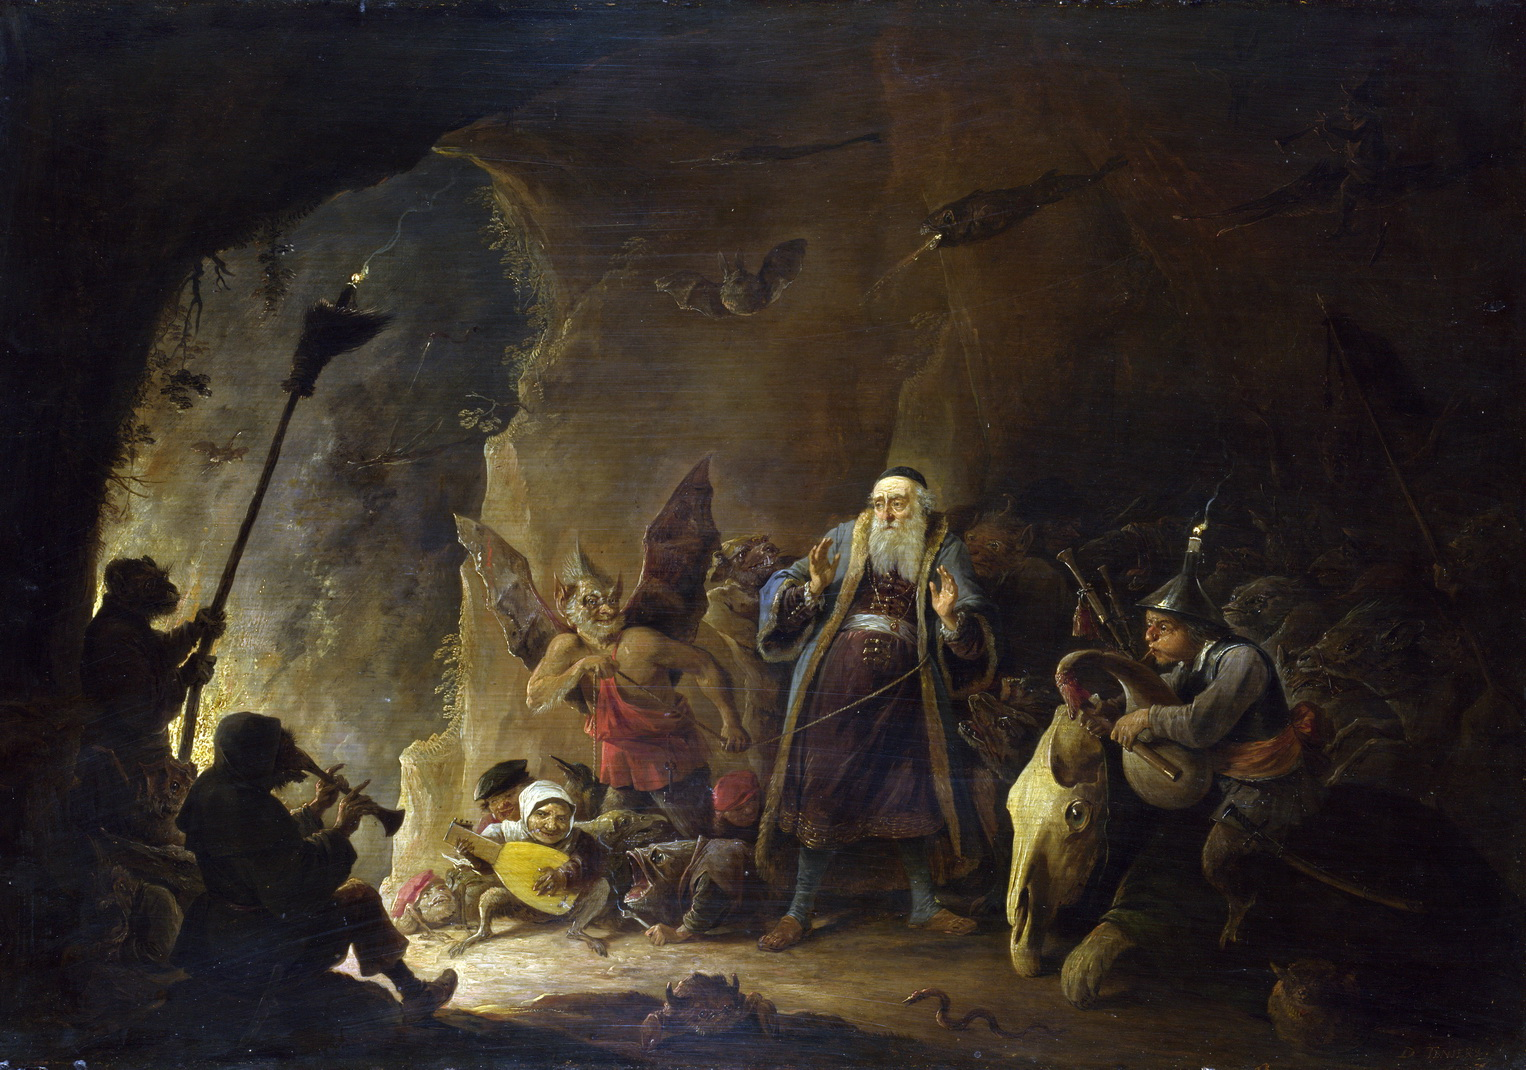 David Teniers the Younger - The Rich Man Being Led To Hell-1526